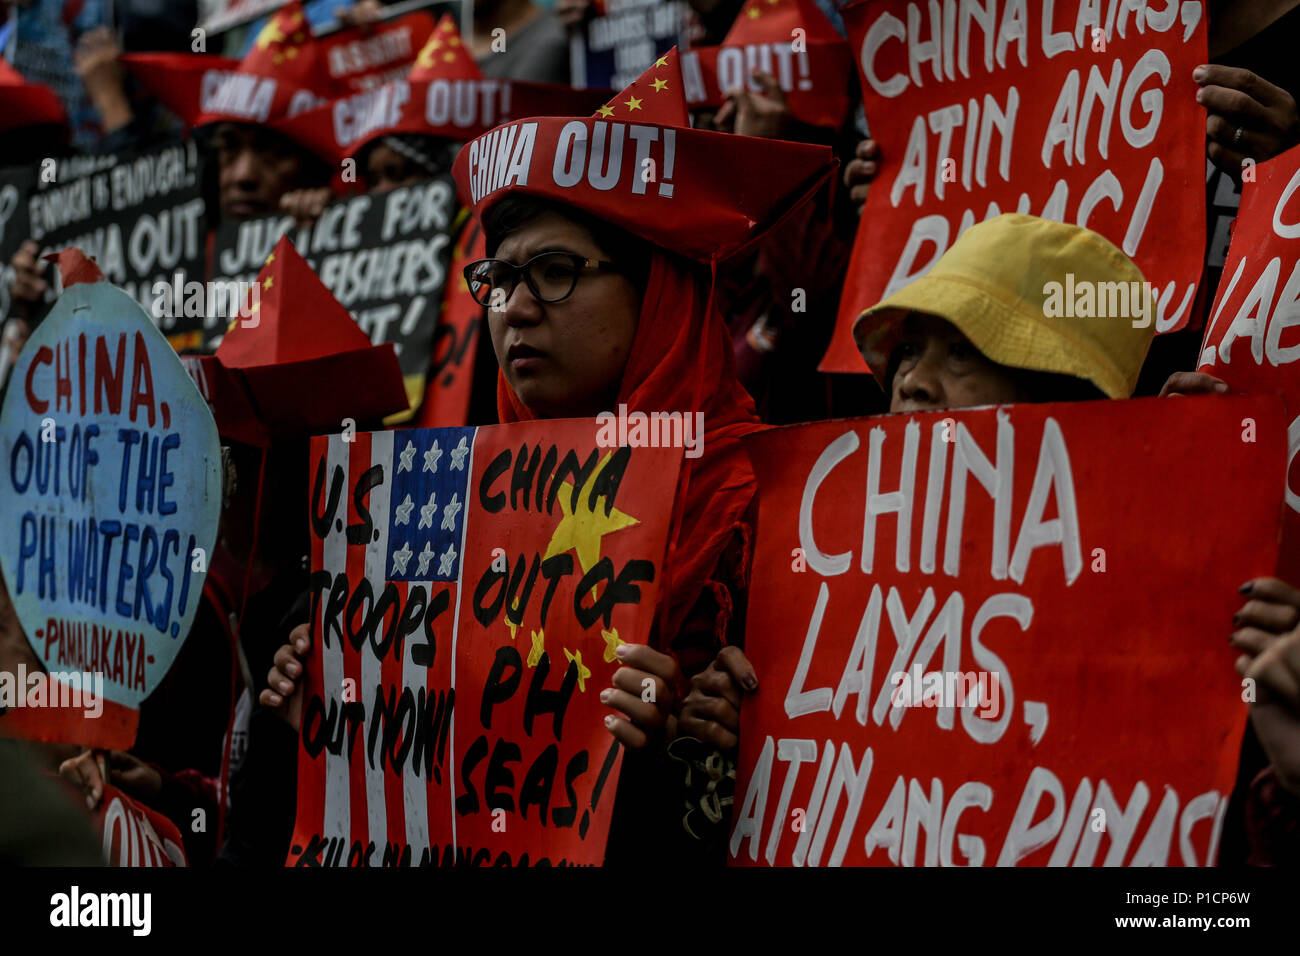 Manila, Philippines. 12th June, 2018. Filipino protesters carry placards as various militant groups protest in front of the Chinese consulate in Makati City, Philippines in celebration of the 120th Philippine Independence Day on Tuesday. June 12, 2018. The groups condemn the ongoing dispute between the Philippines and China in the South China Sea. Credit: Basilio H. Sepe/ZUMA Wire/Alamy Live News - Stock Image